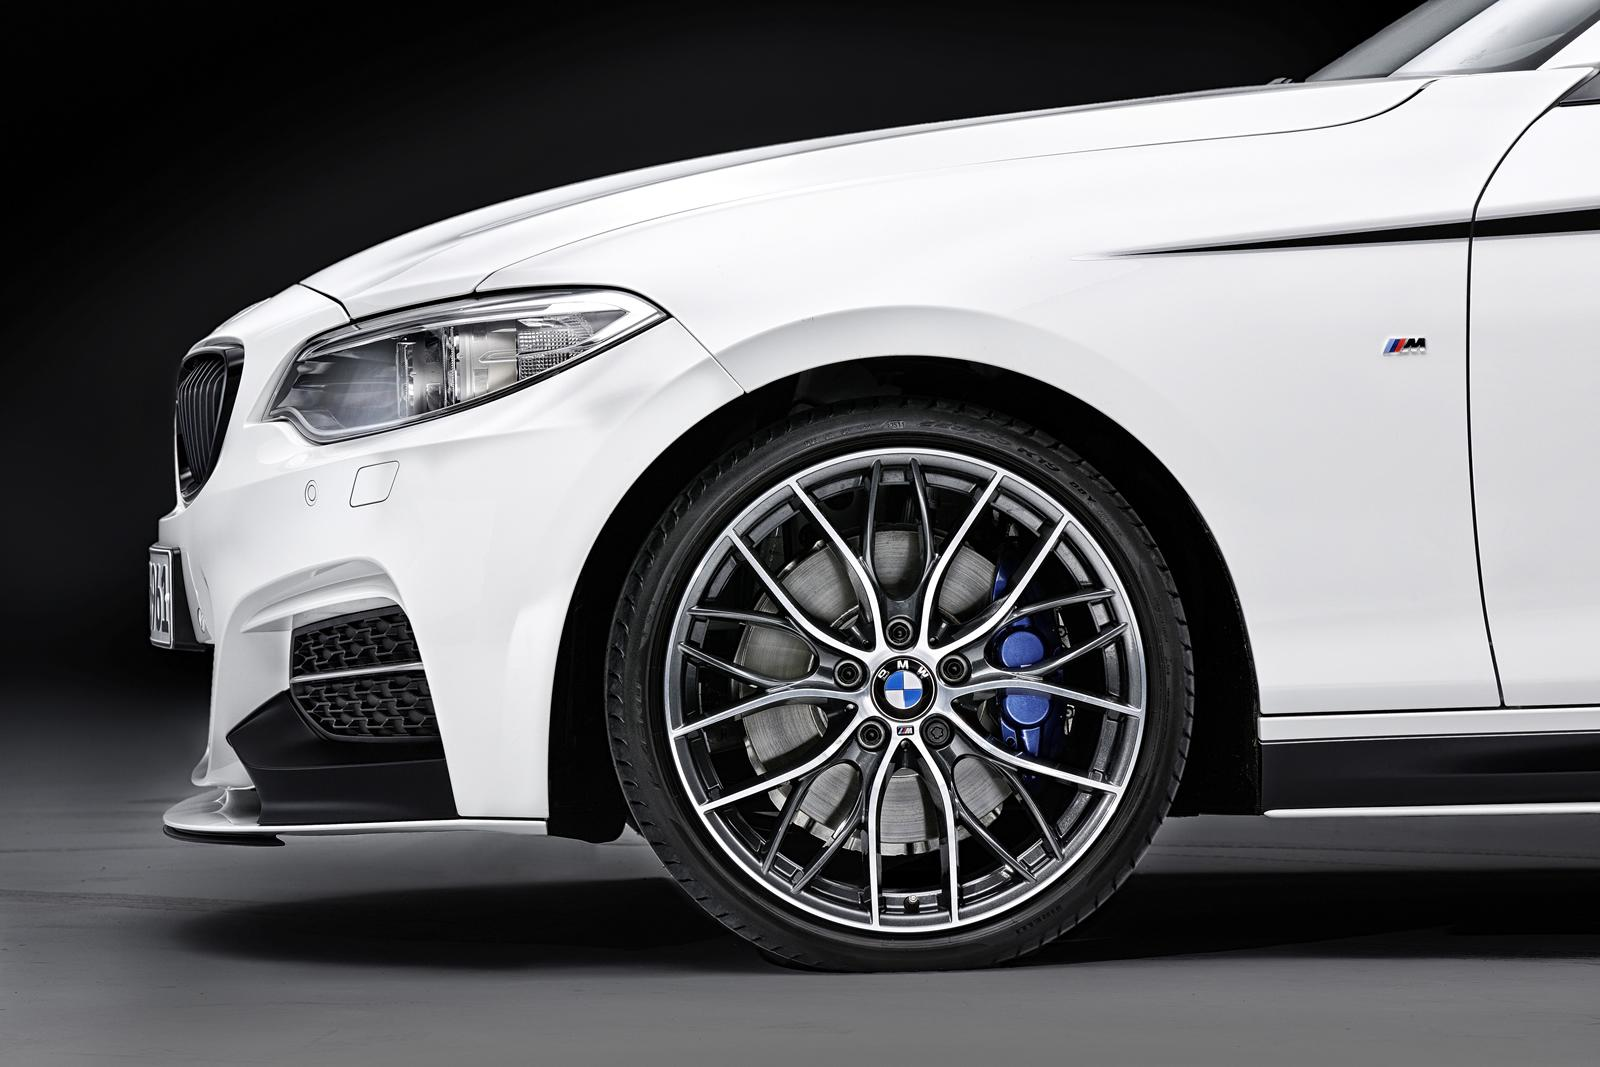 Exotic Cars Wallpaper Pack M Performance Parts Kit For Bmw 2 Series Coupe Unveiled